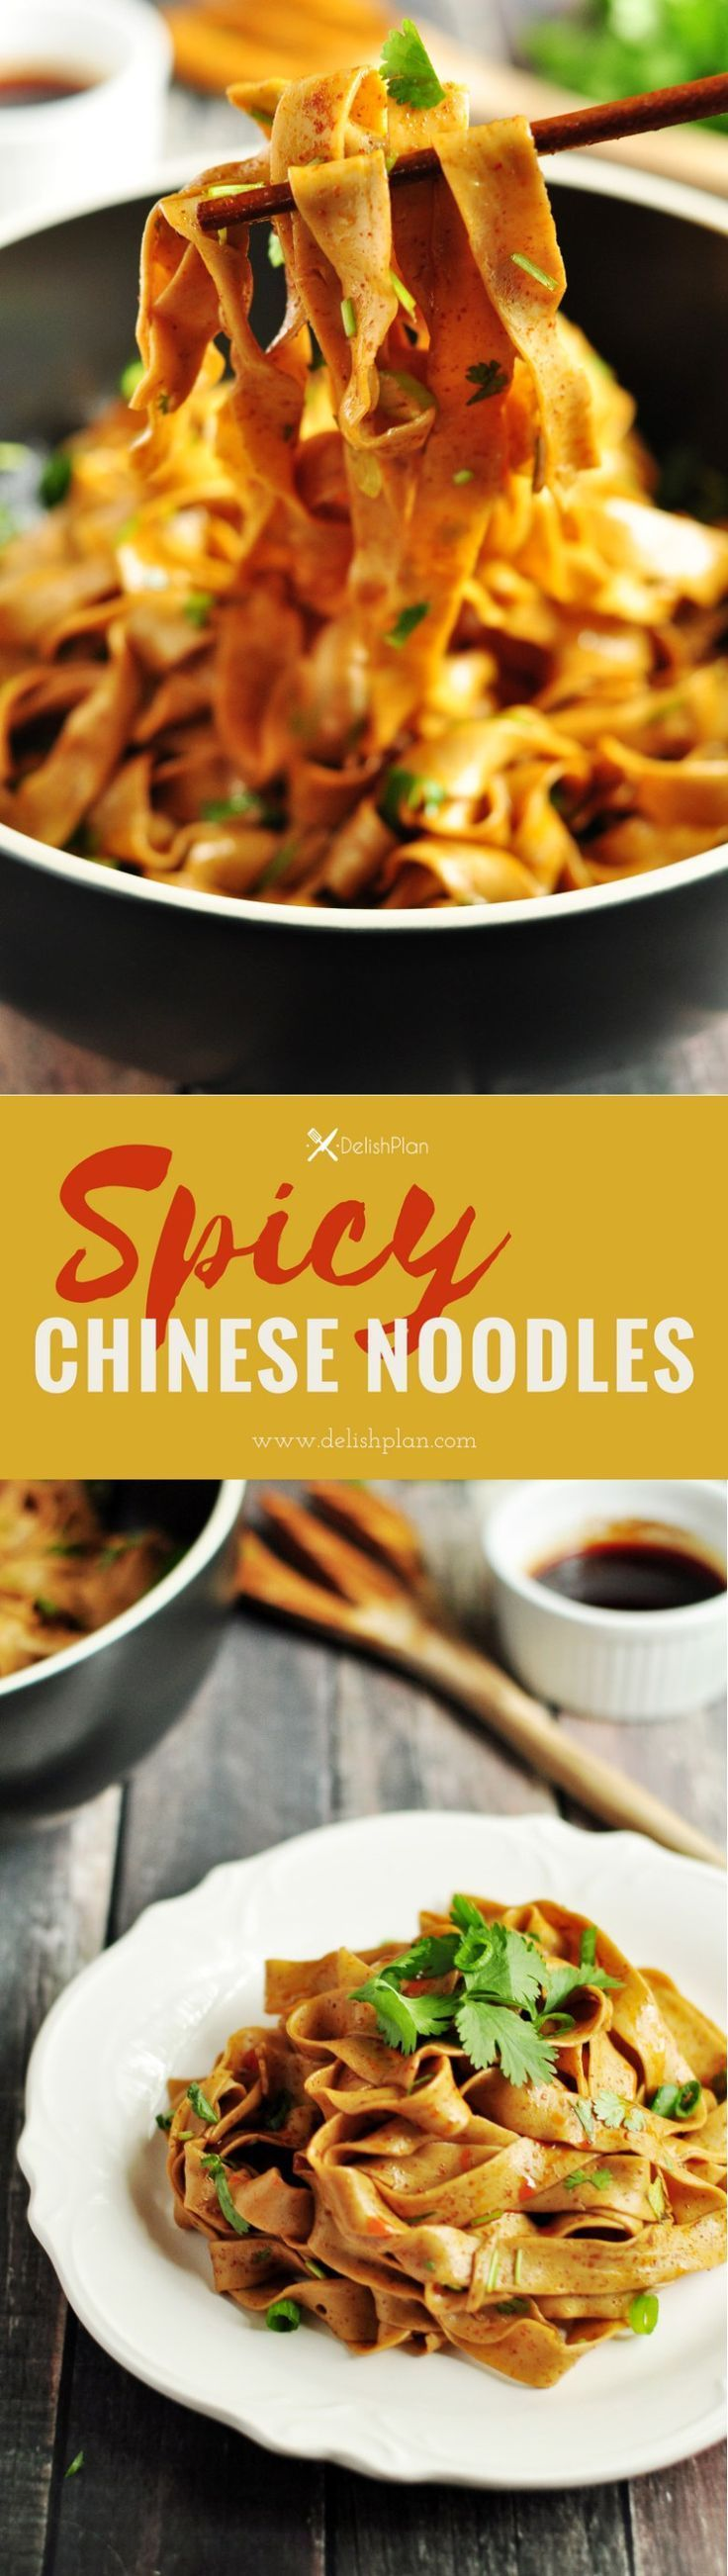 Spicy Chinese Noodles | Recipe | The o'jays, Noodles and Spicy